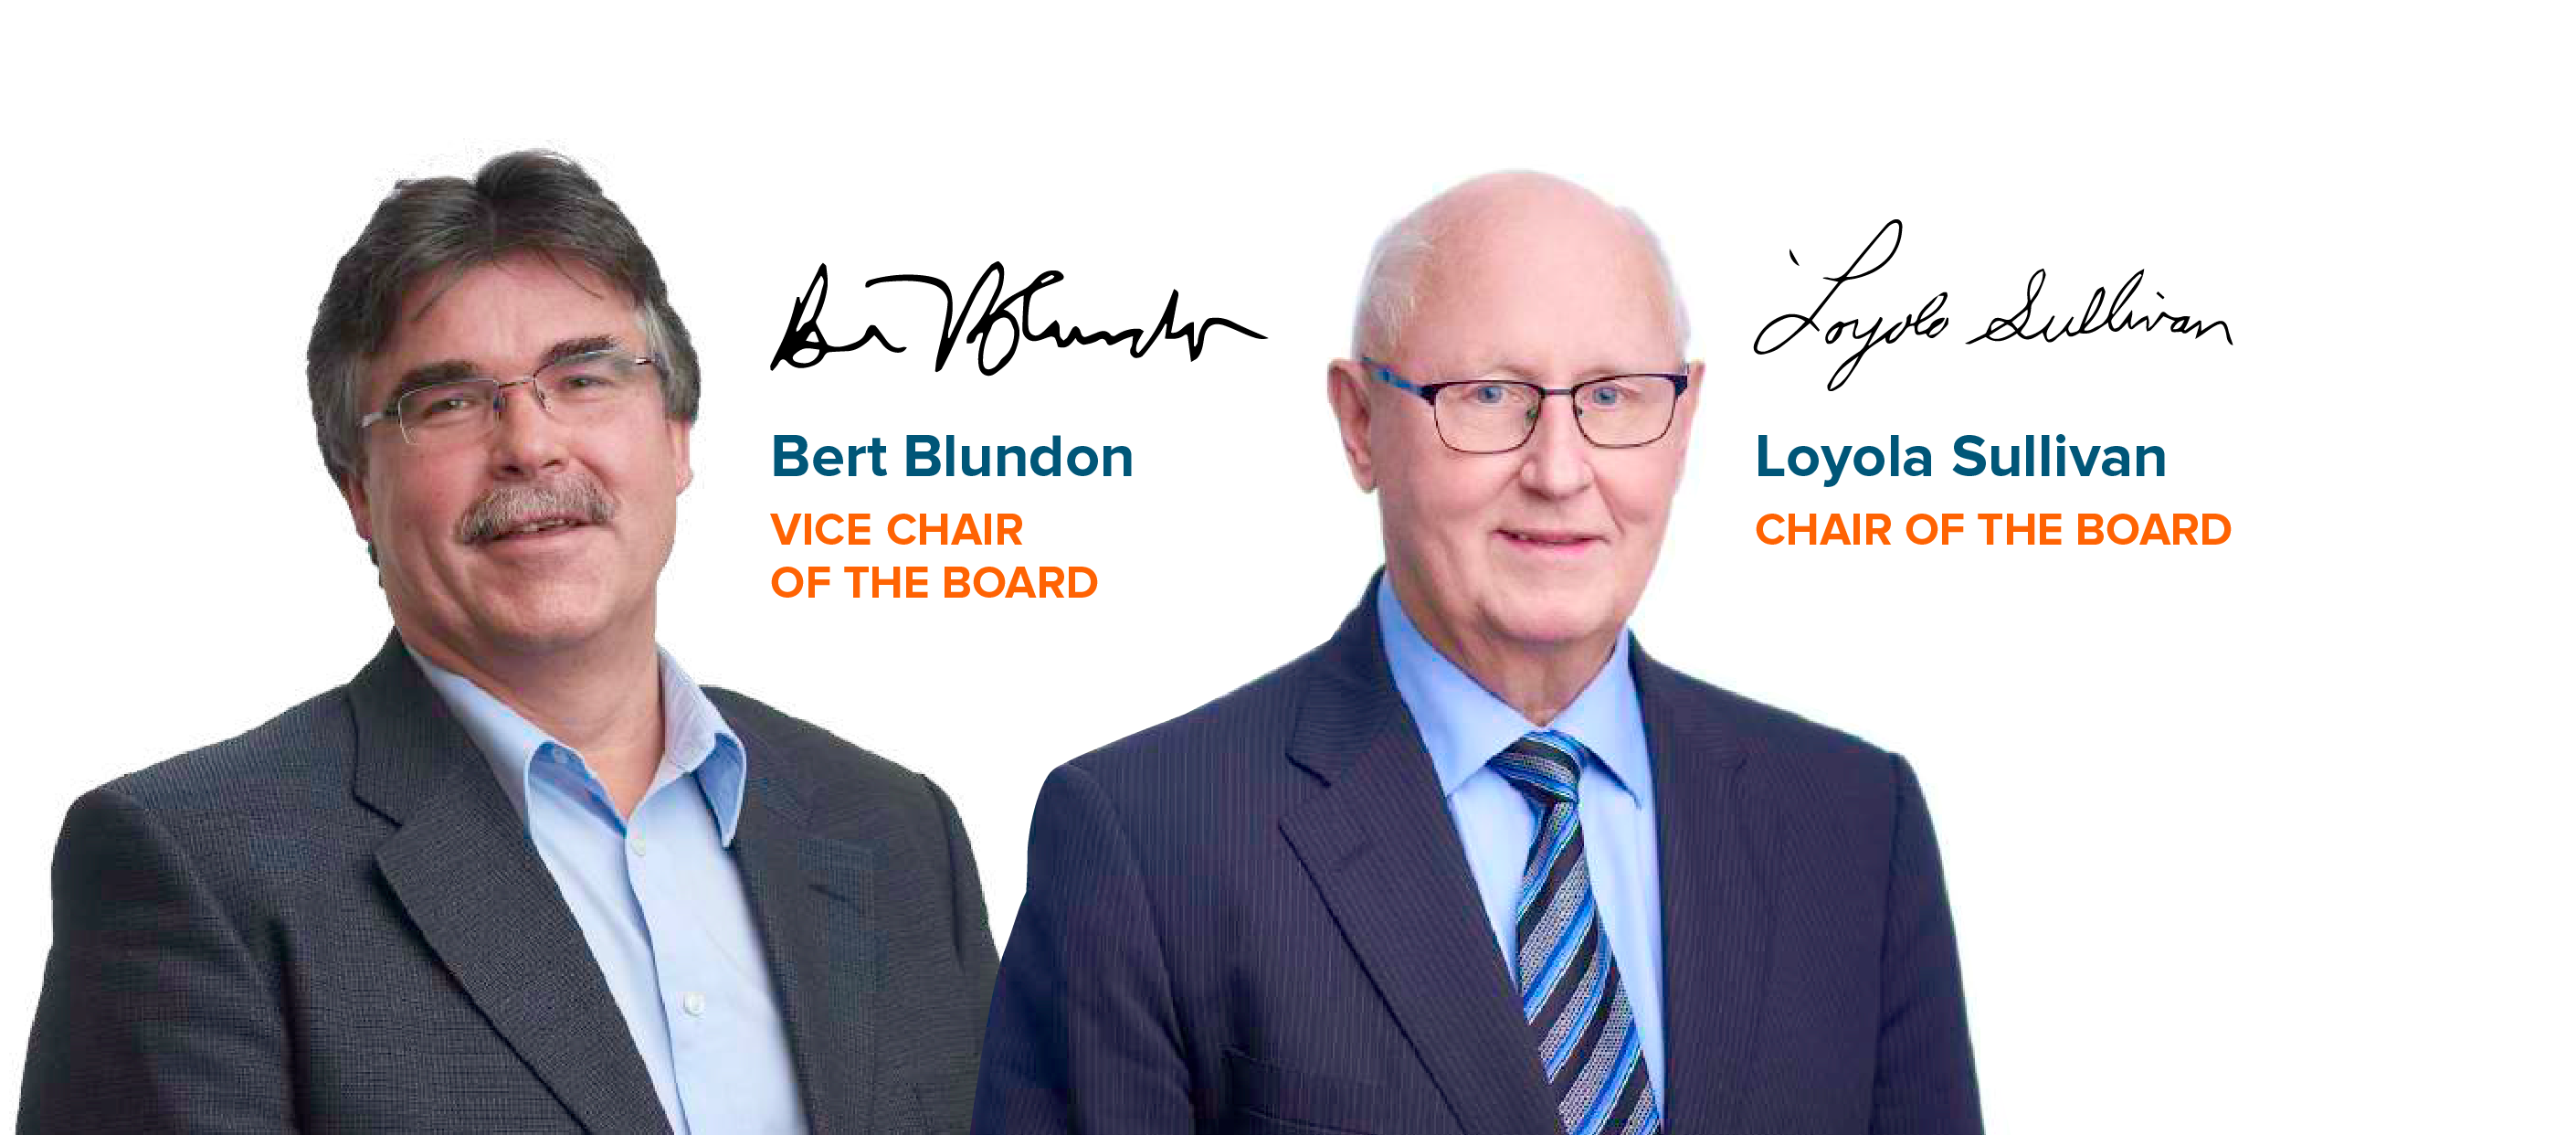 Chair and Vice Chair of the Board Signature and Headshot